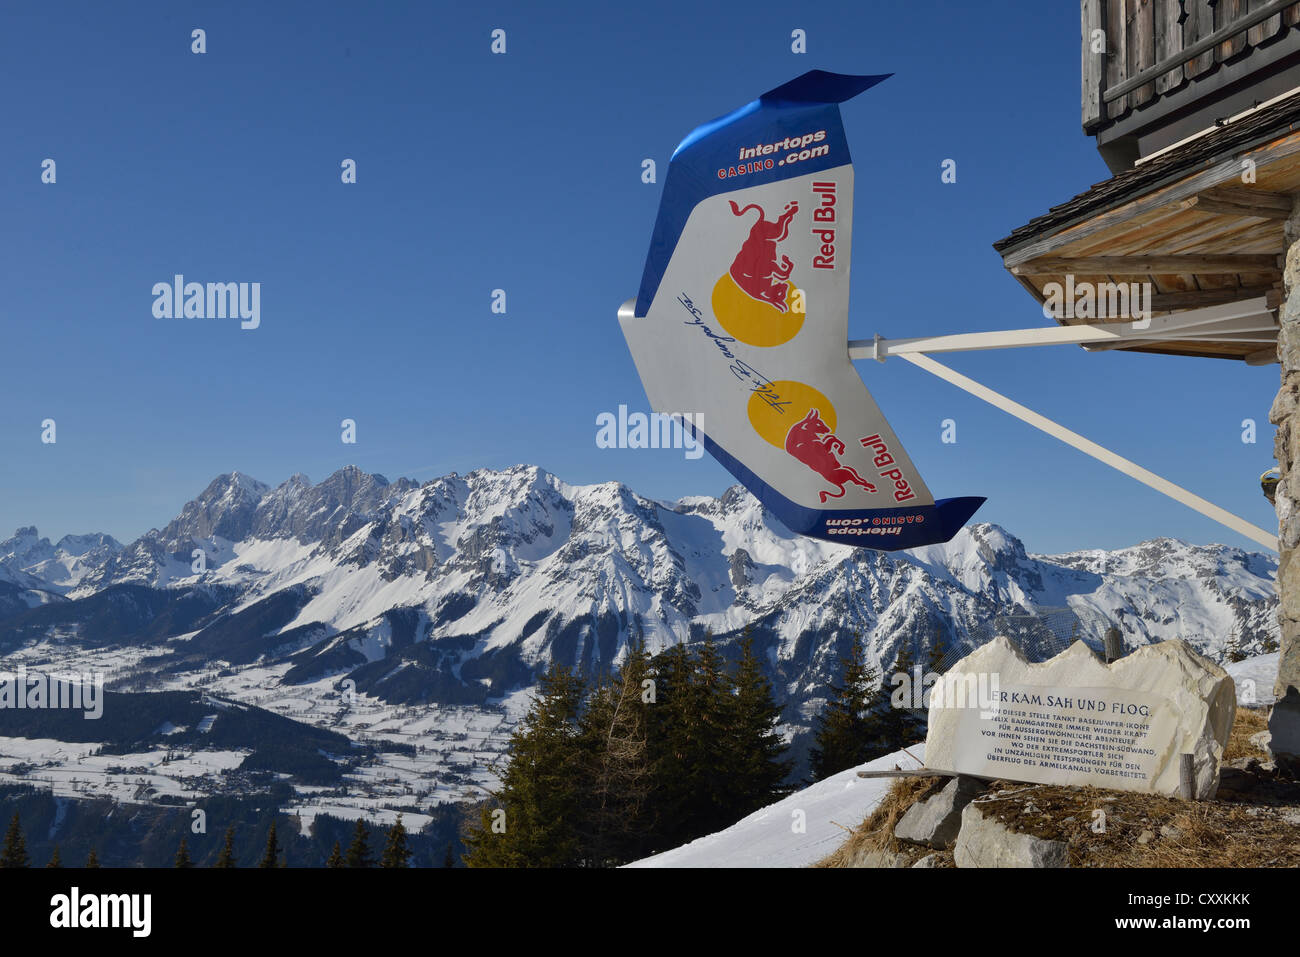 Panoramic views of Dachstein massif, Dachstein Suedwand, memorial stone for Felix Baumgartner whose practice area - Stock Image